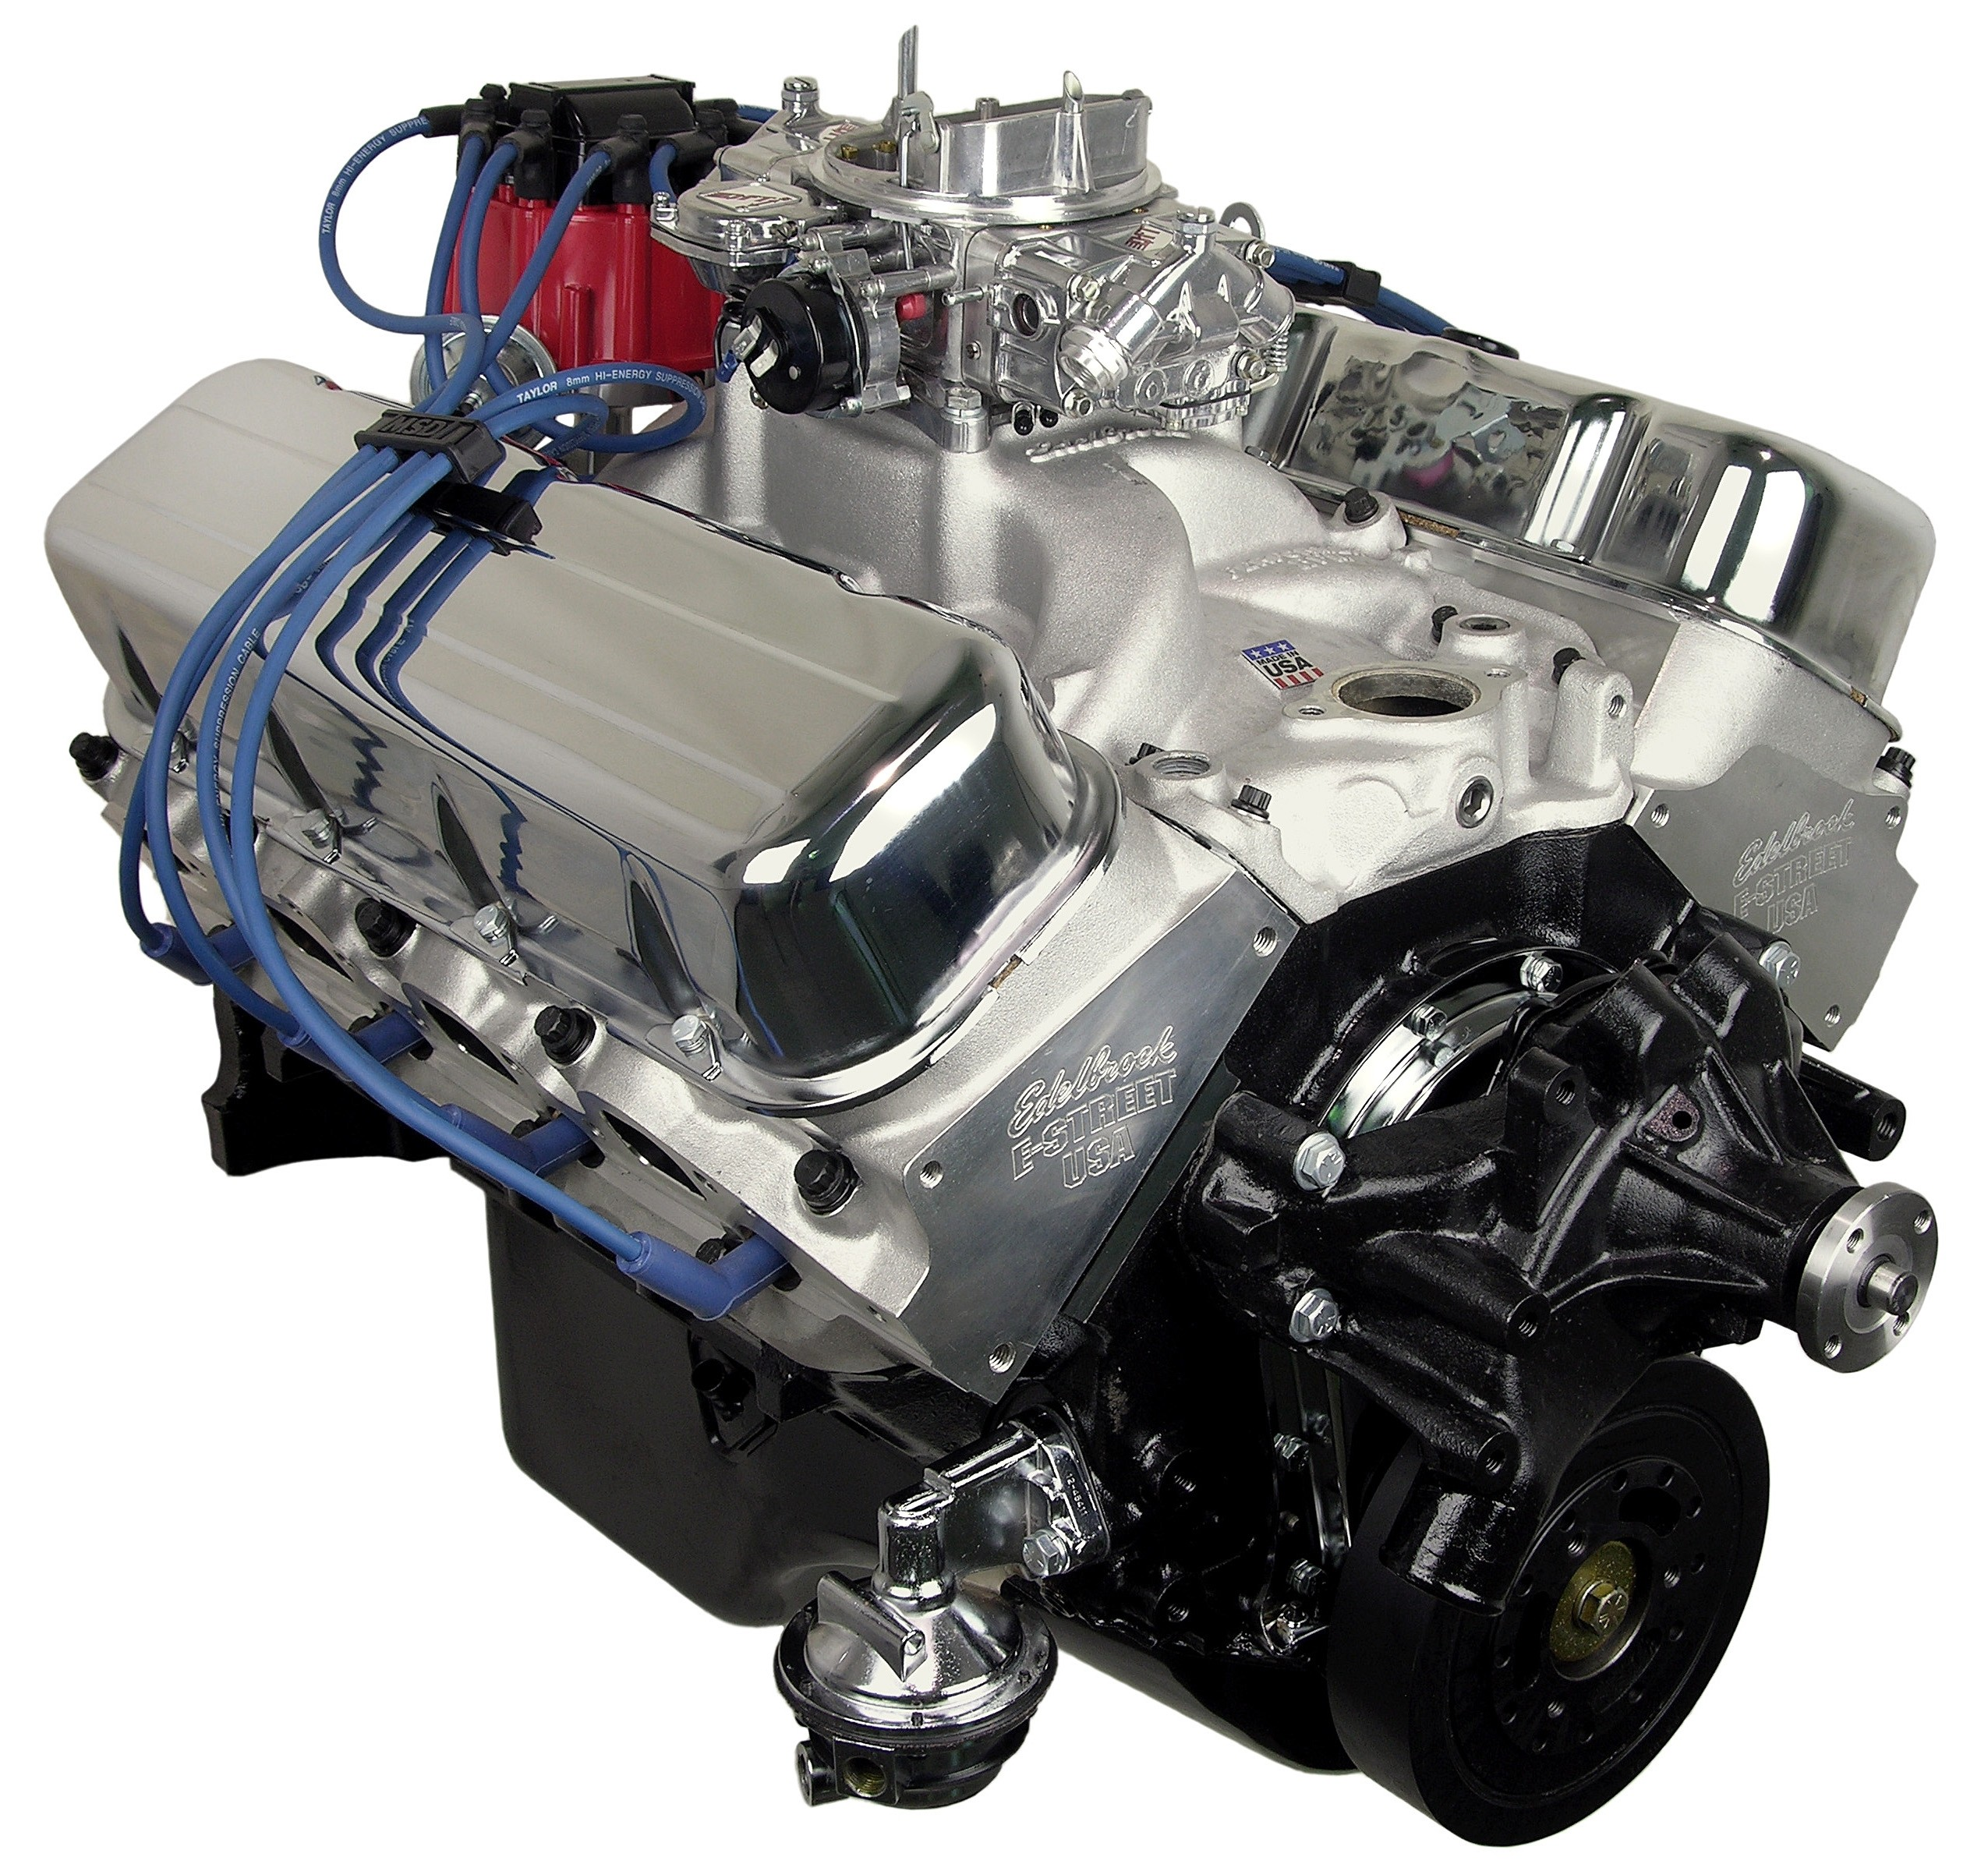 Atk High Performance Engines Crate Now Available At Summit Jeep 4 0 Stroker Engine For Sale Stage 3 Chevy 454 500 Hp